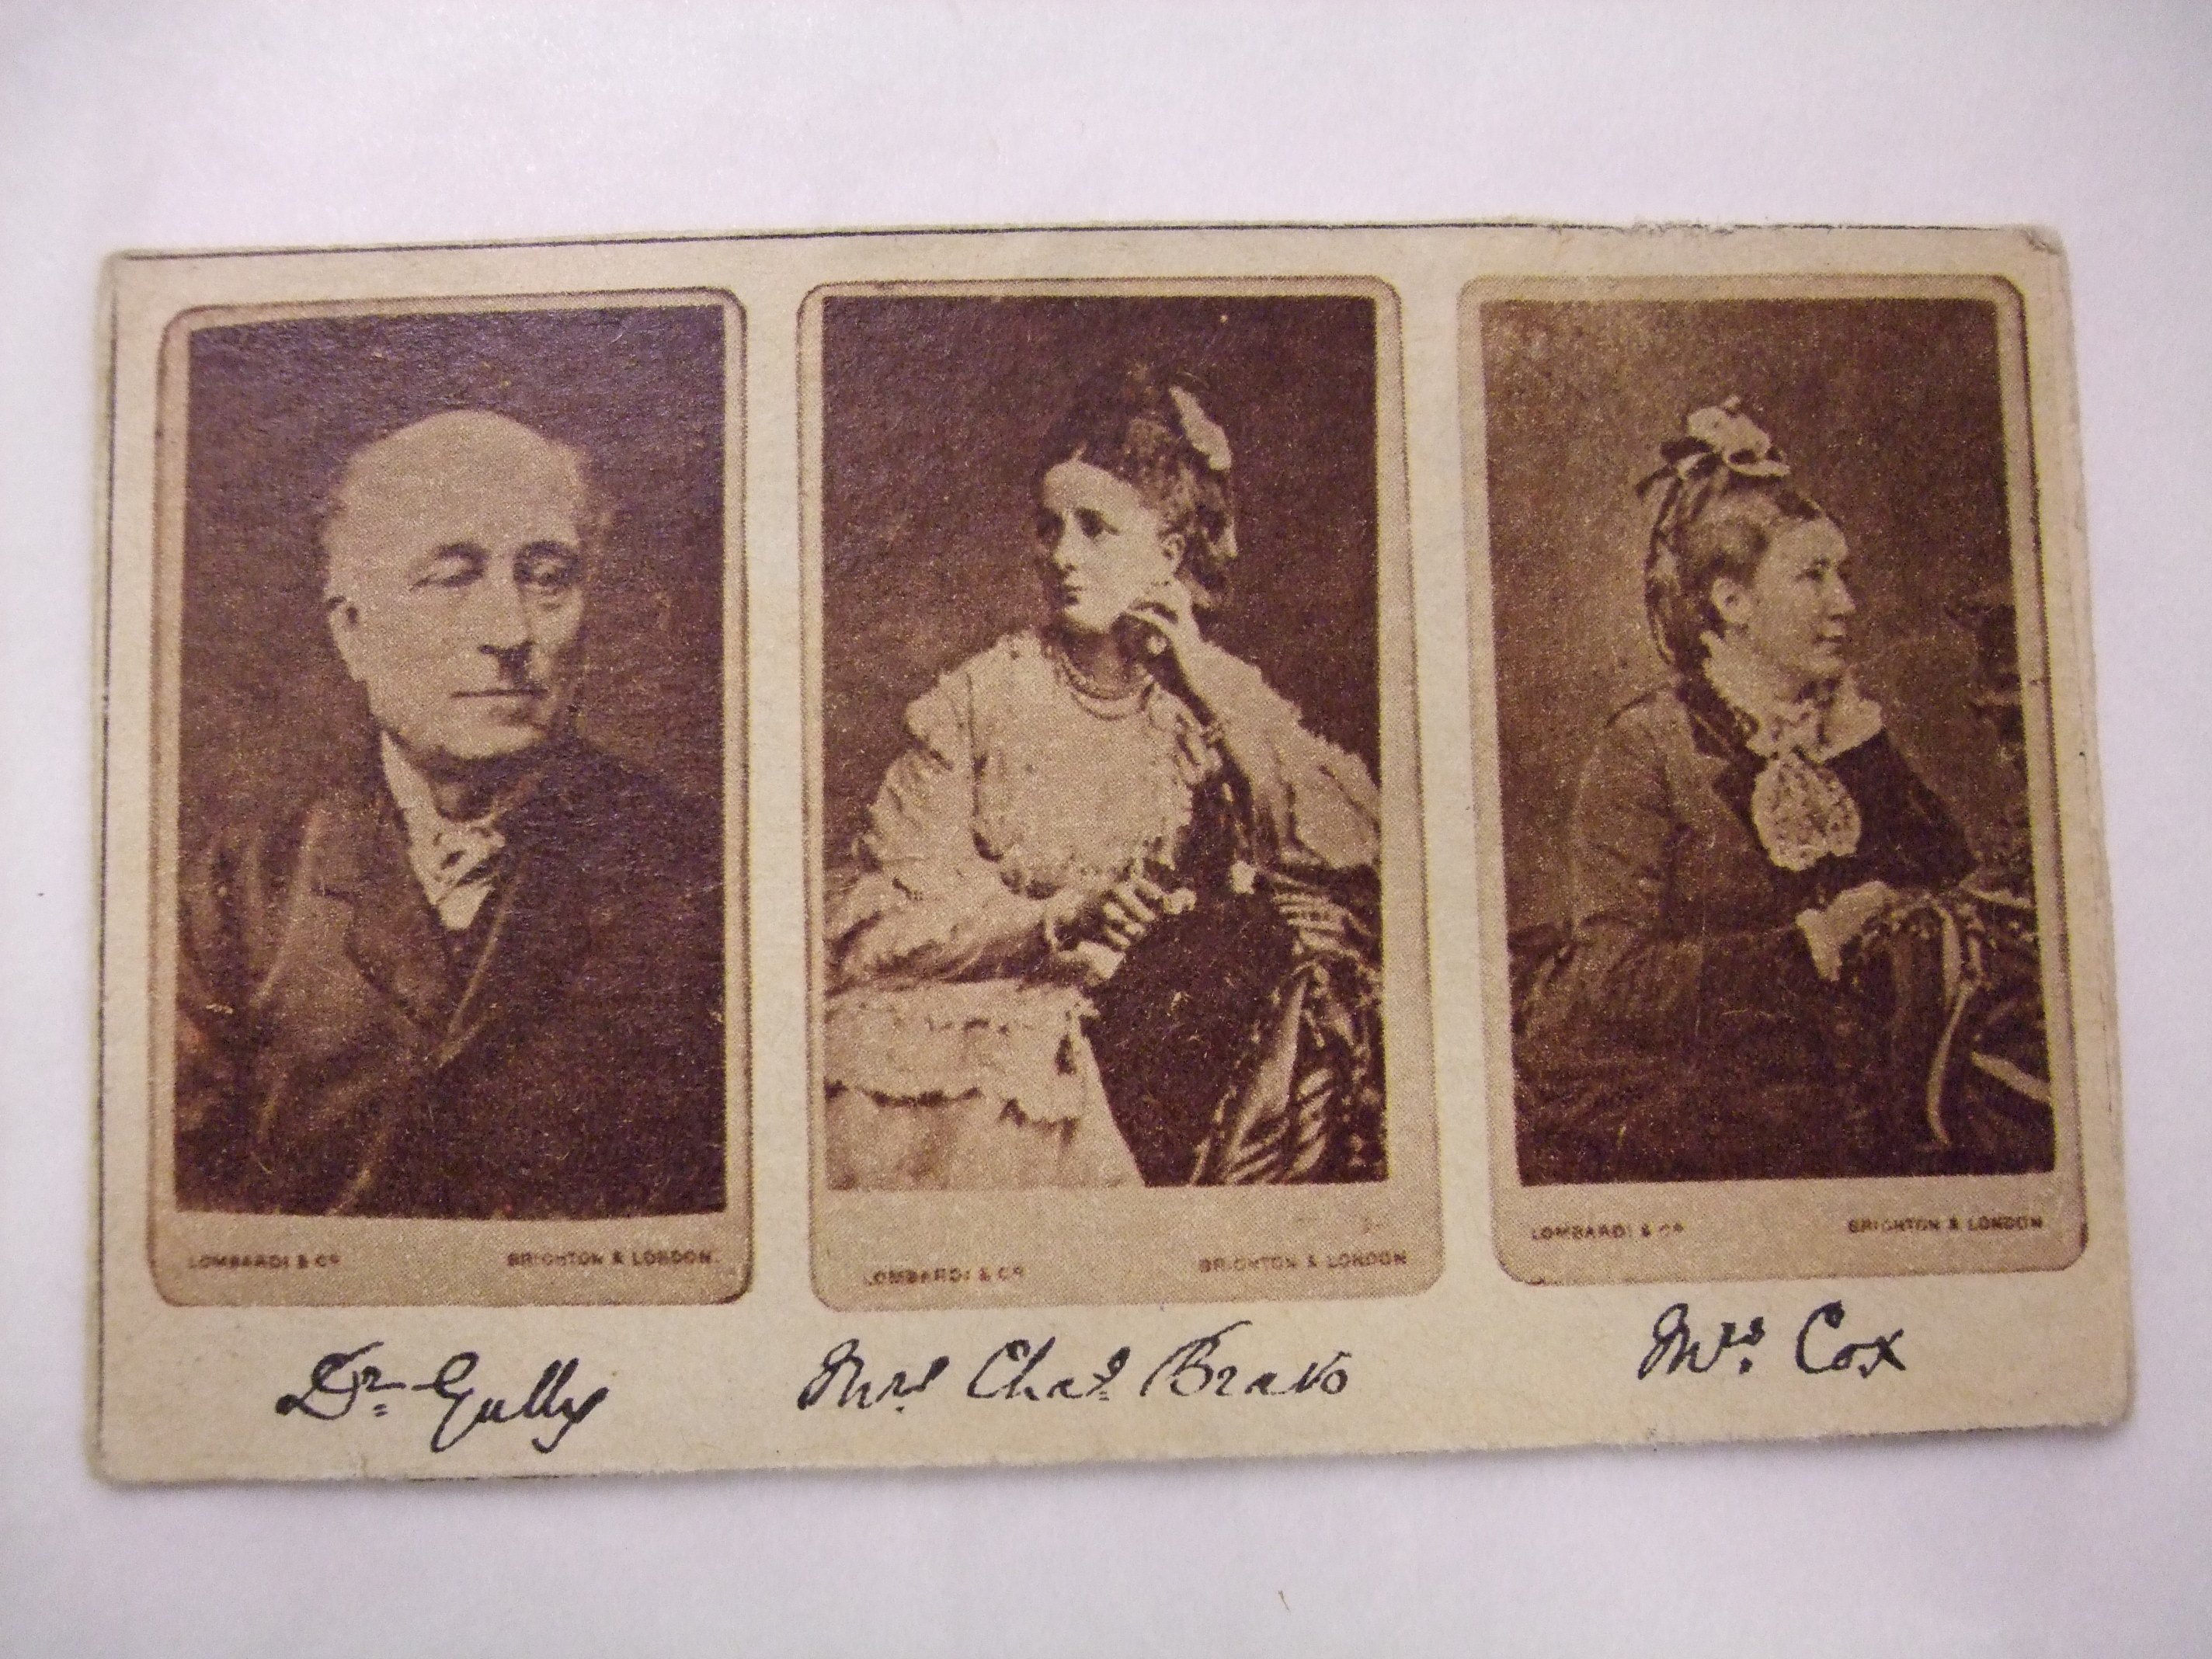 Three figures featured on this carte-de-visite